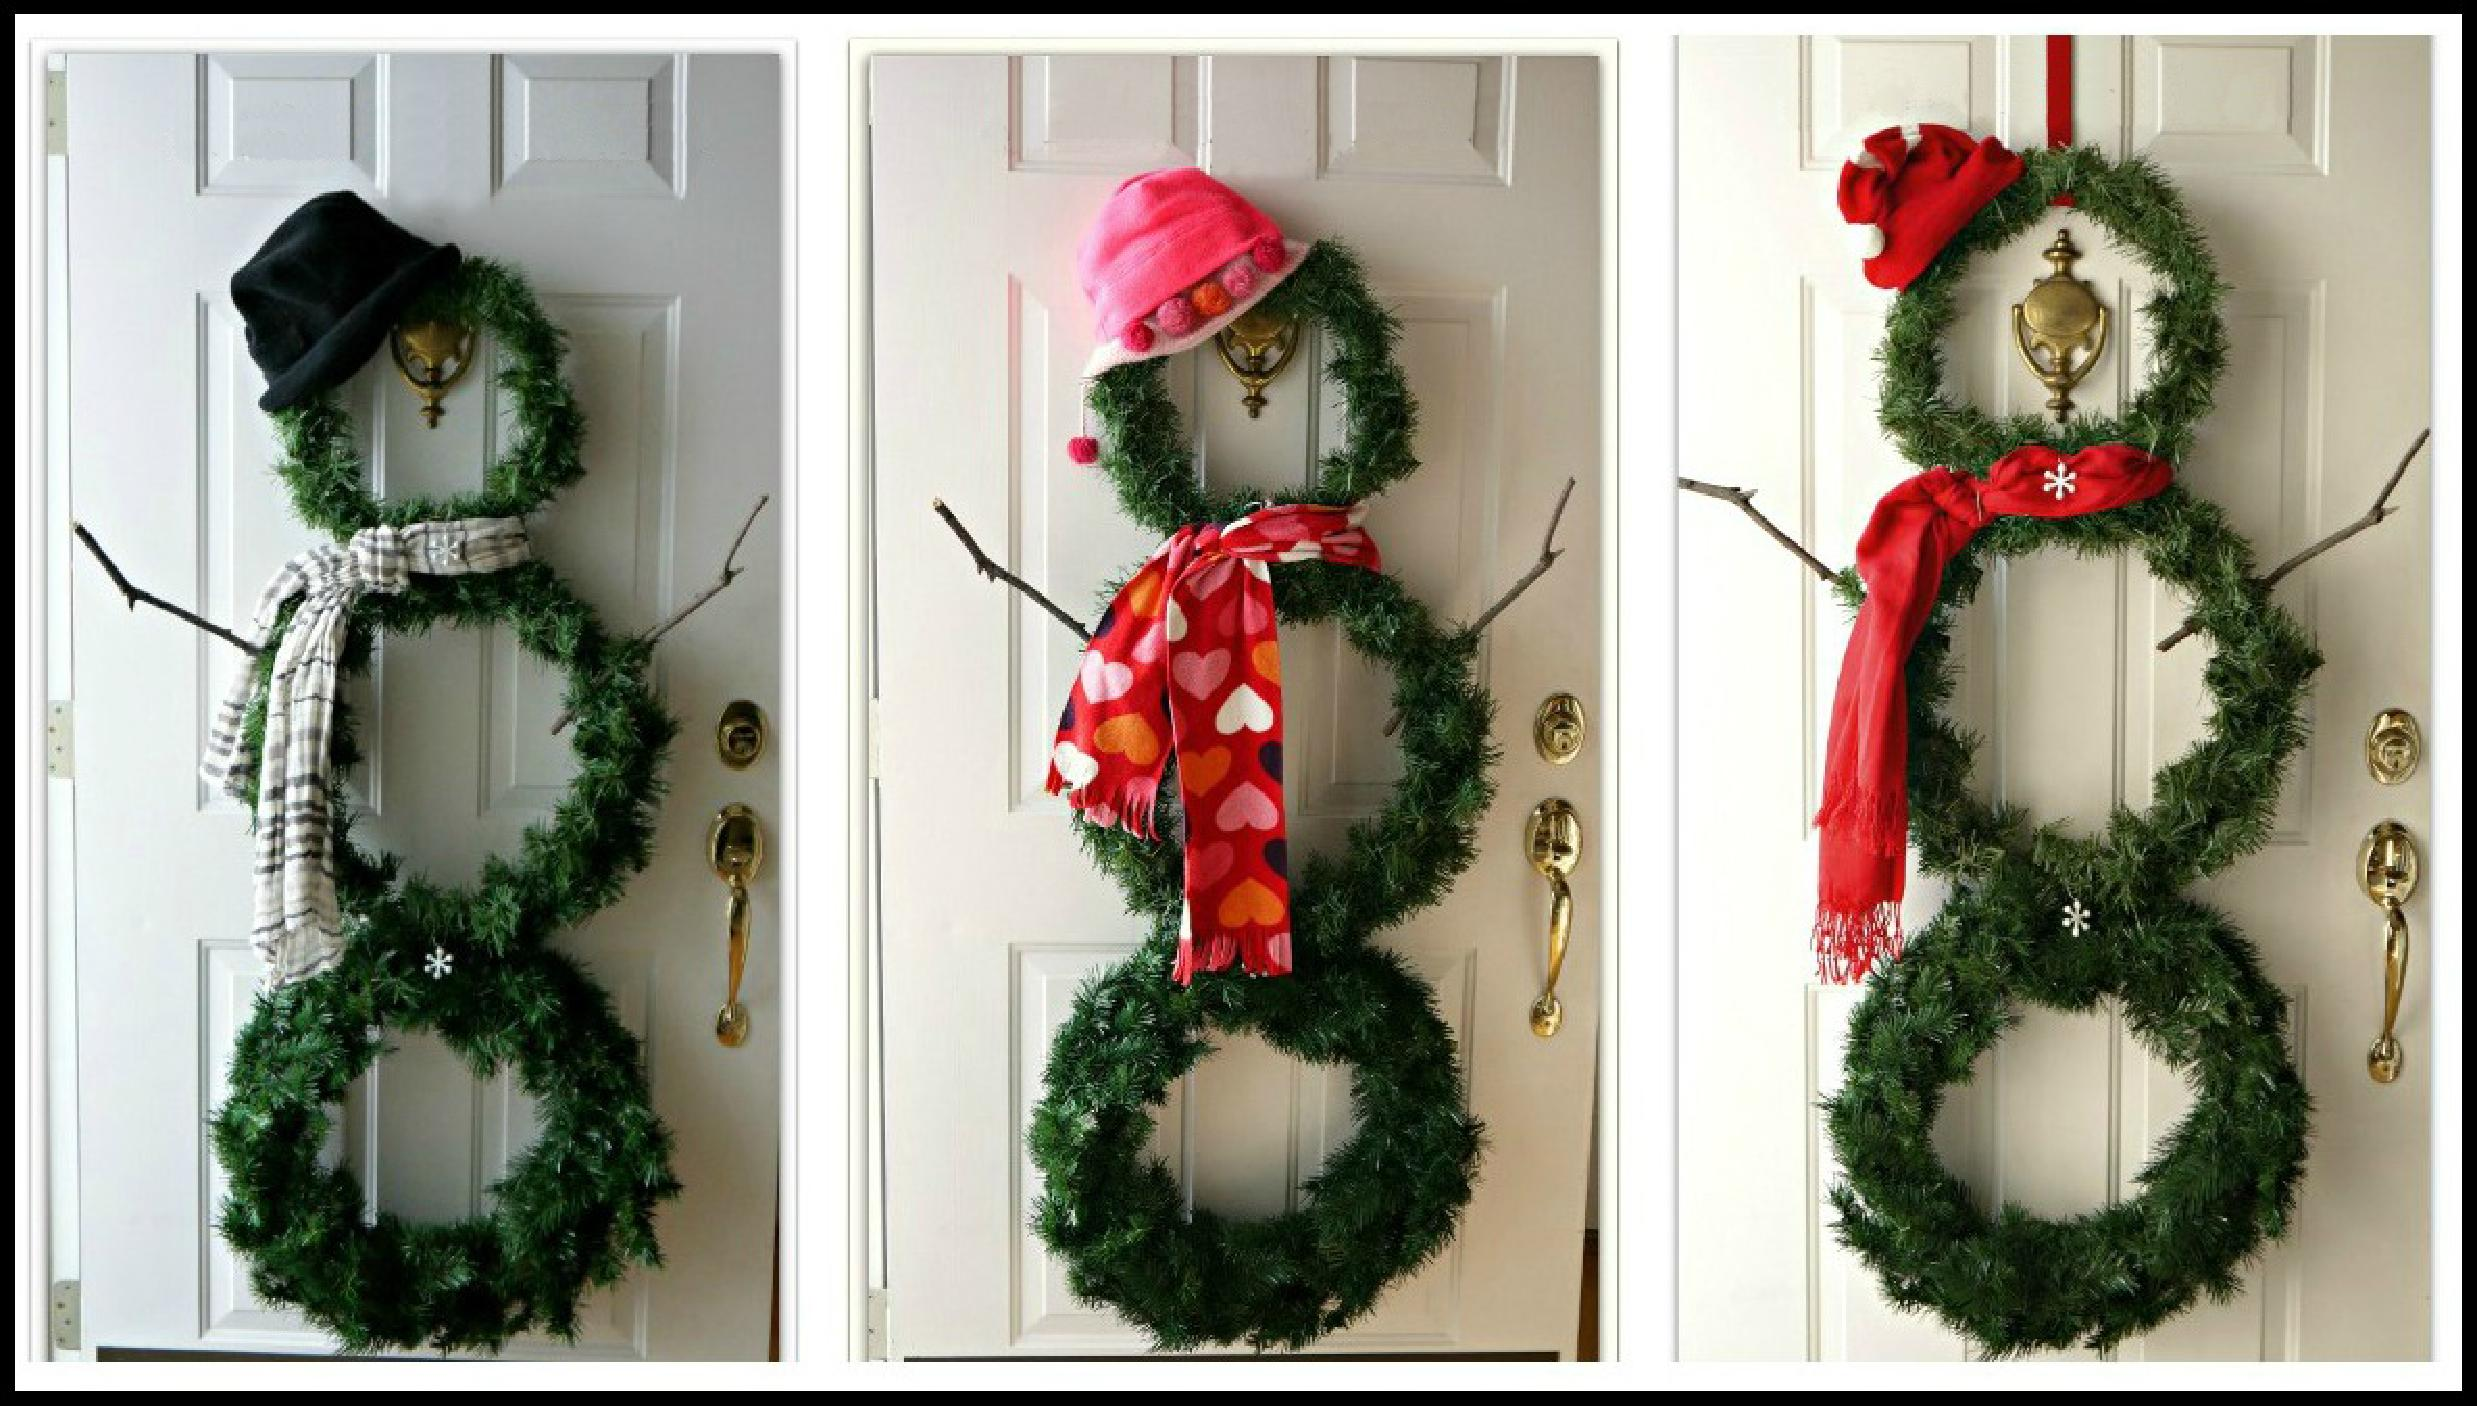 Do it yourself 10 ideas for new year decorations rojal vase for 3 wreath door decoration